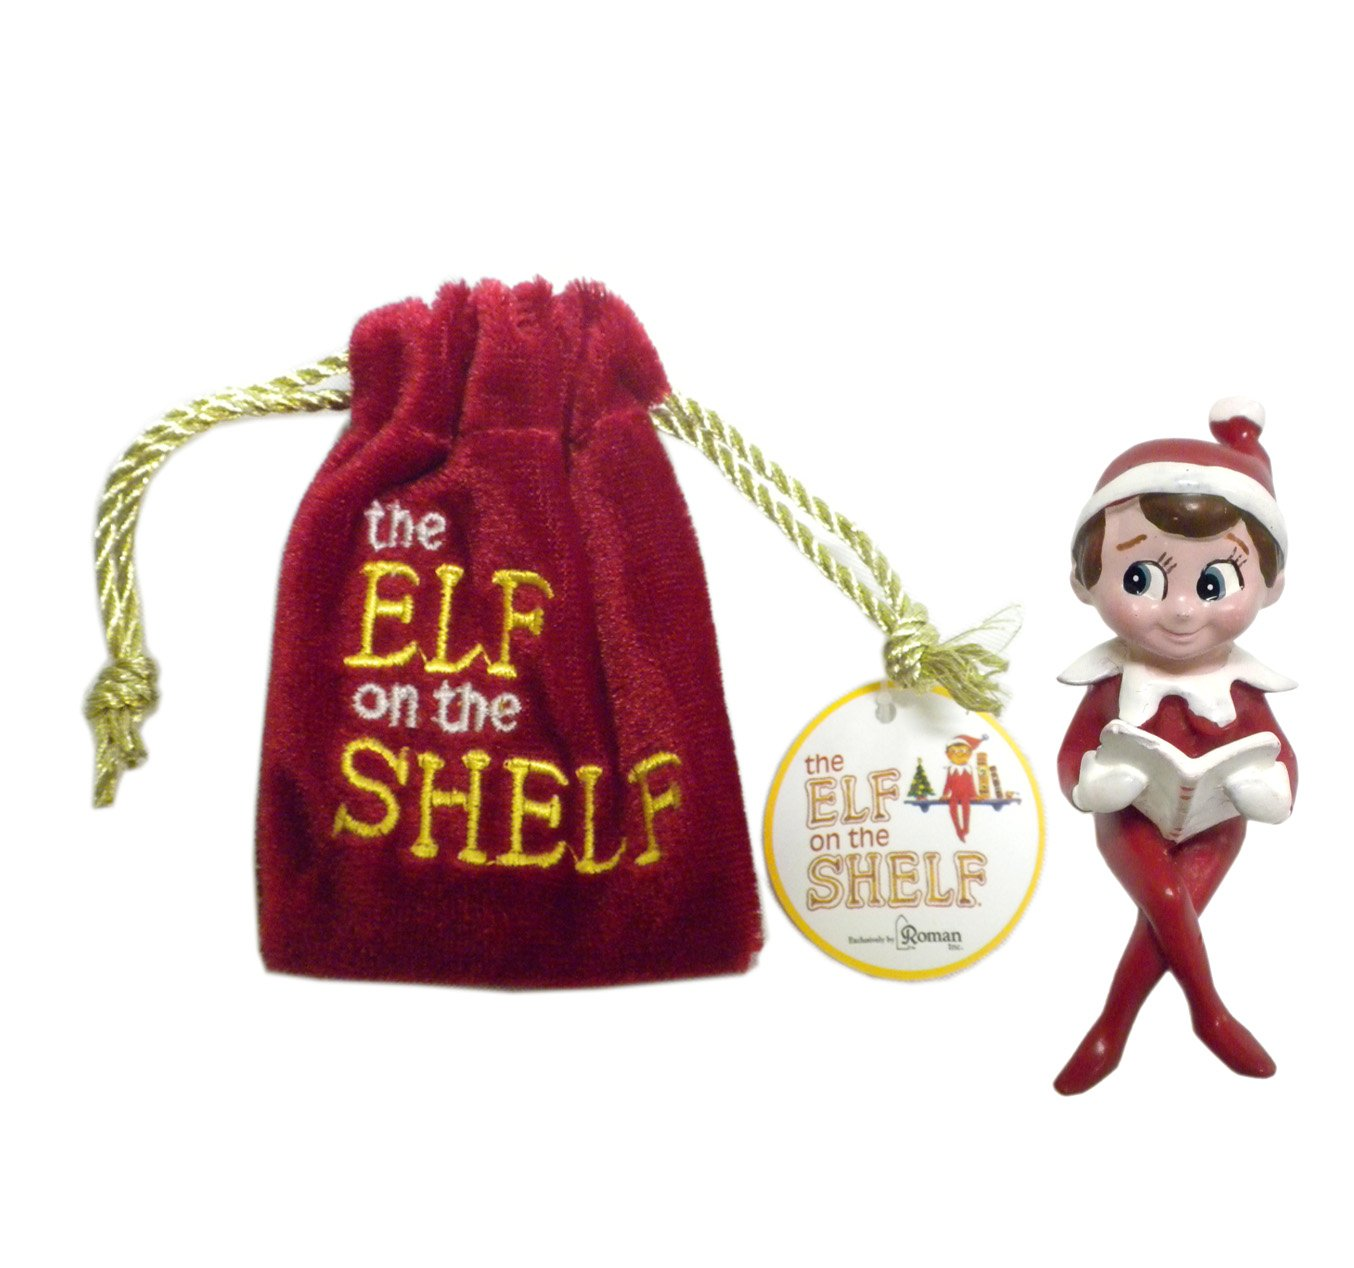 amazoncom the elf on the shelf in a velvet bag decorative mini figurine christmas tradition new story book face figurine home kitchen - Elf On The Shelf Christmas Tradition